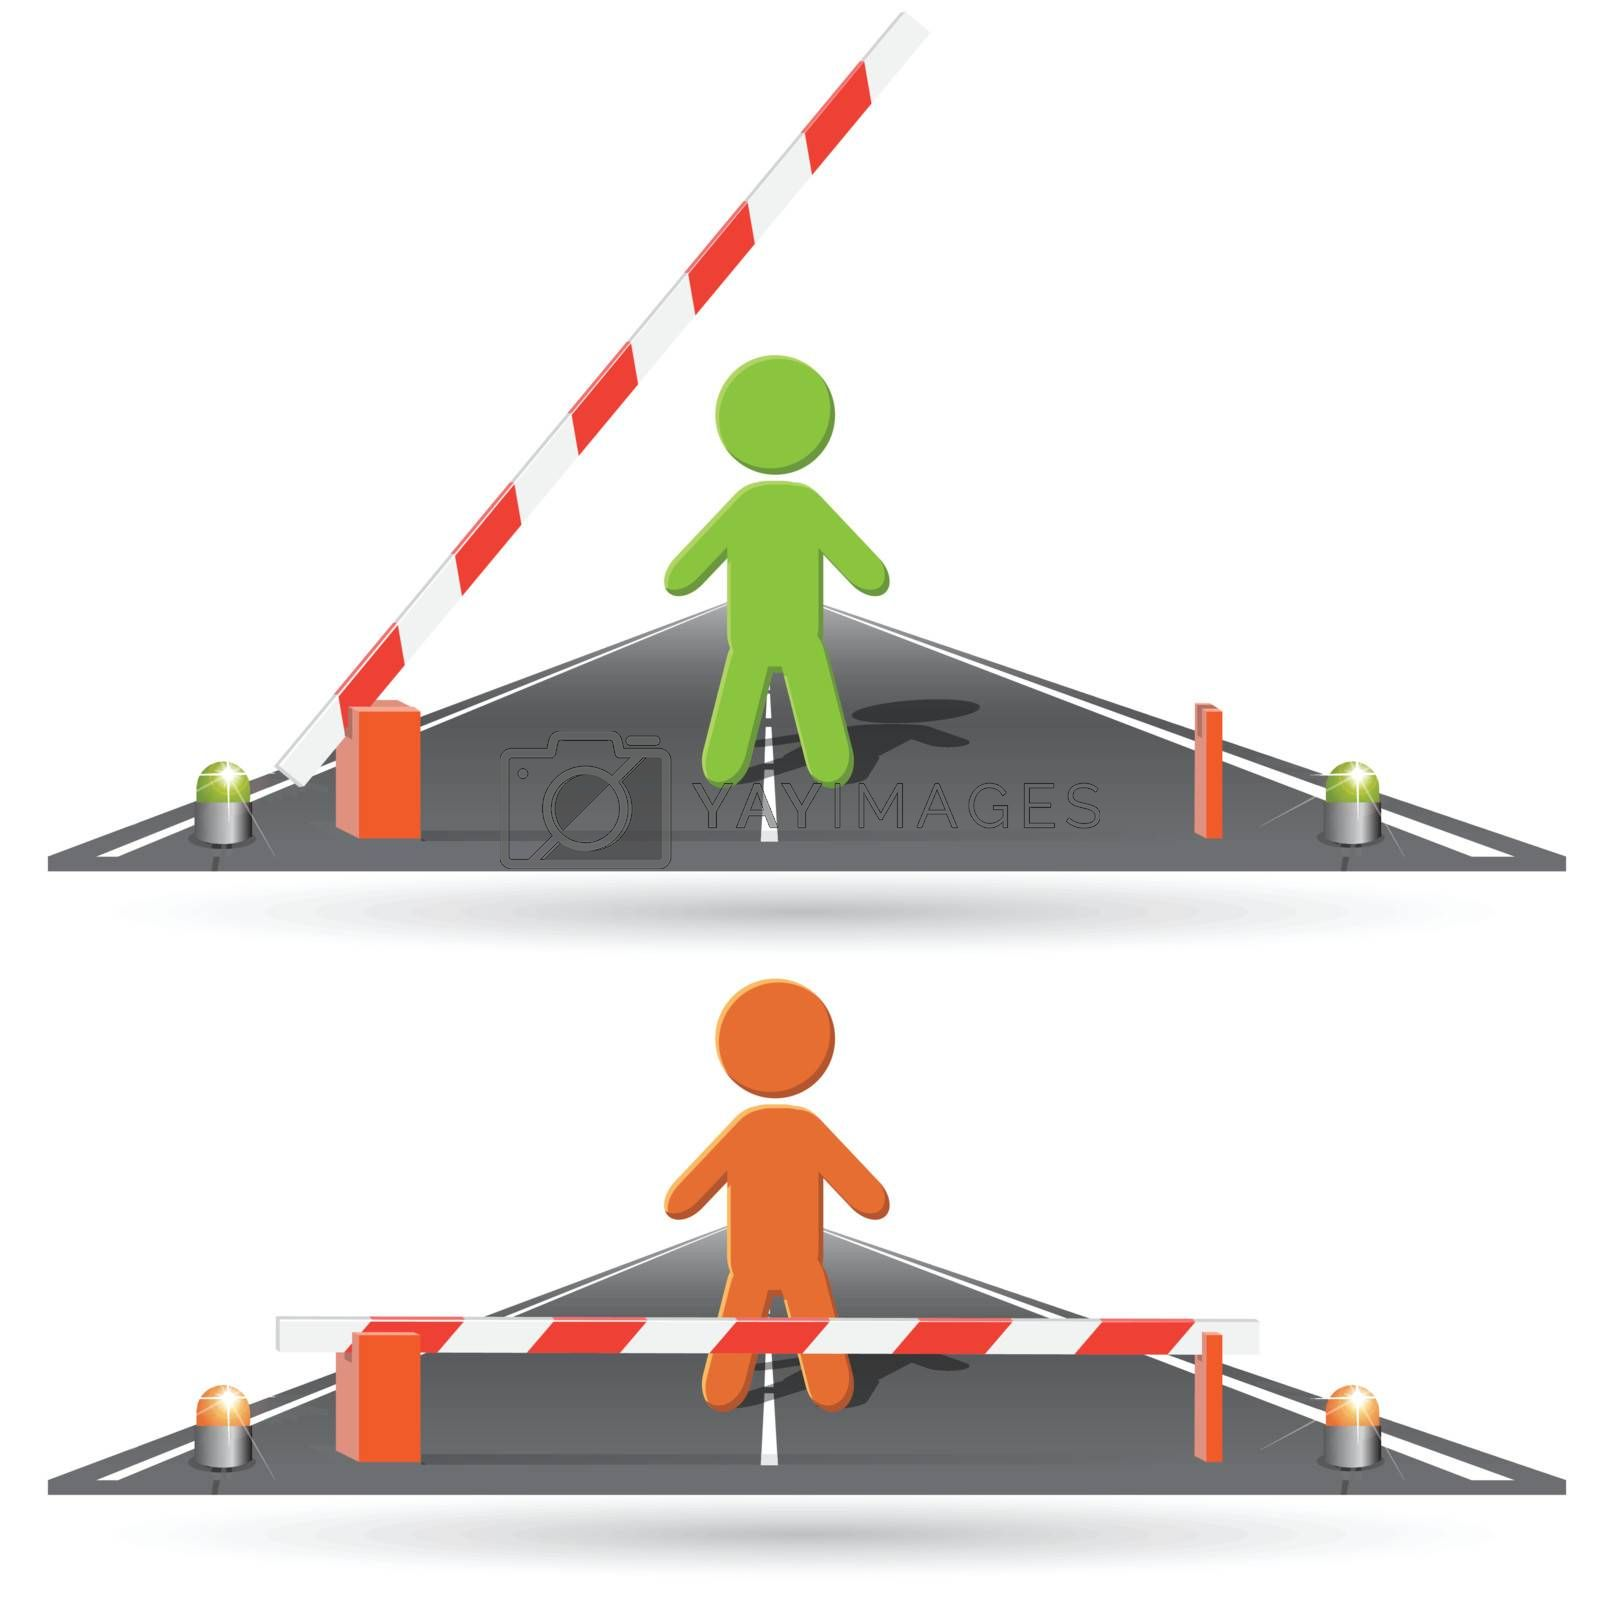 illustration, sign of the stop, open and locked barrier